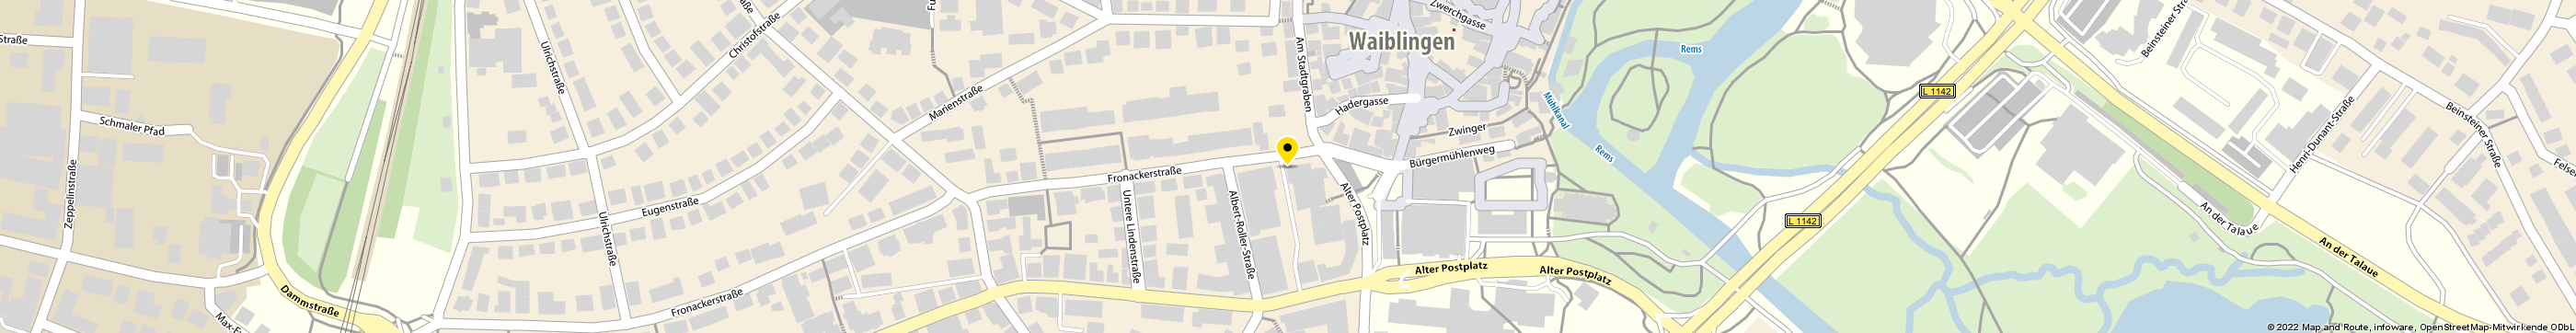 E-Plus Shop in Waiblingen Karte